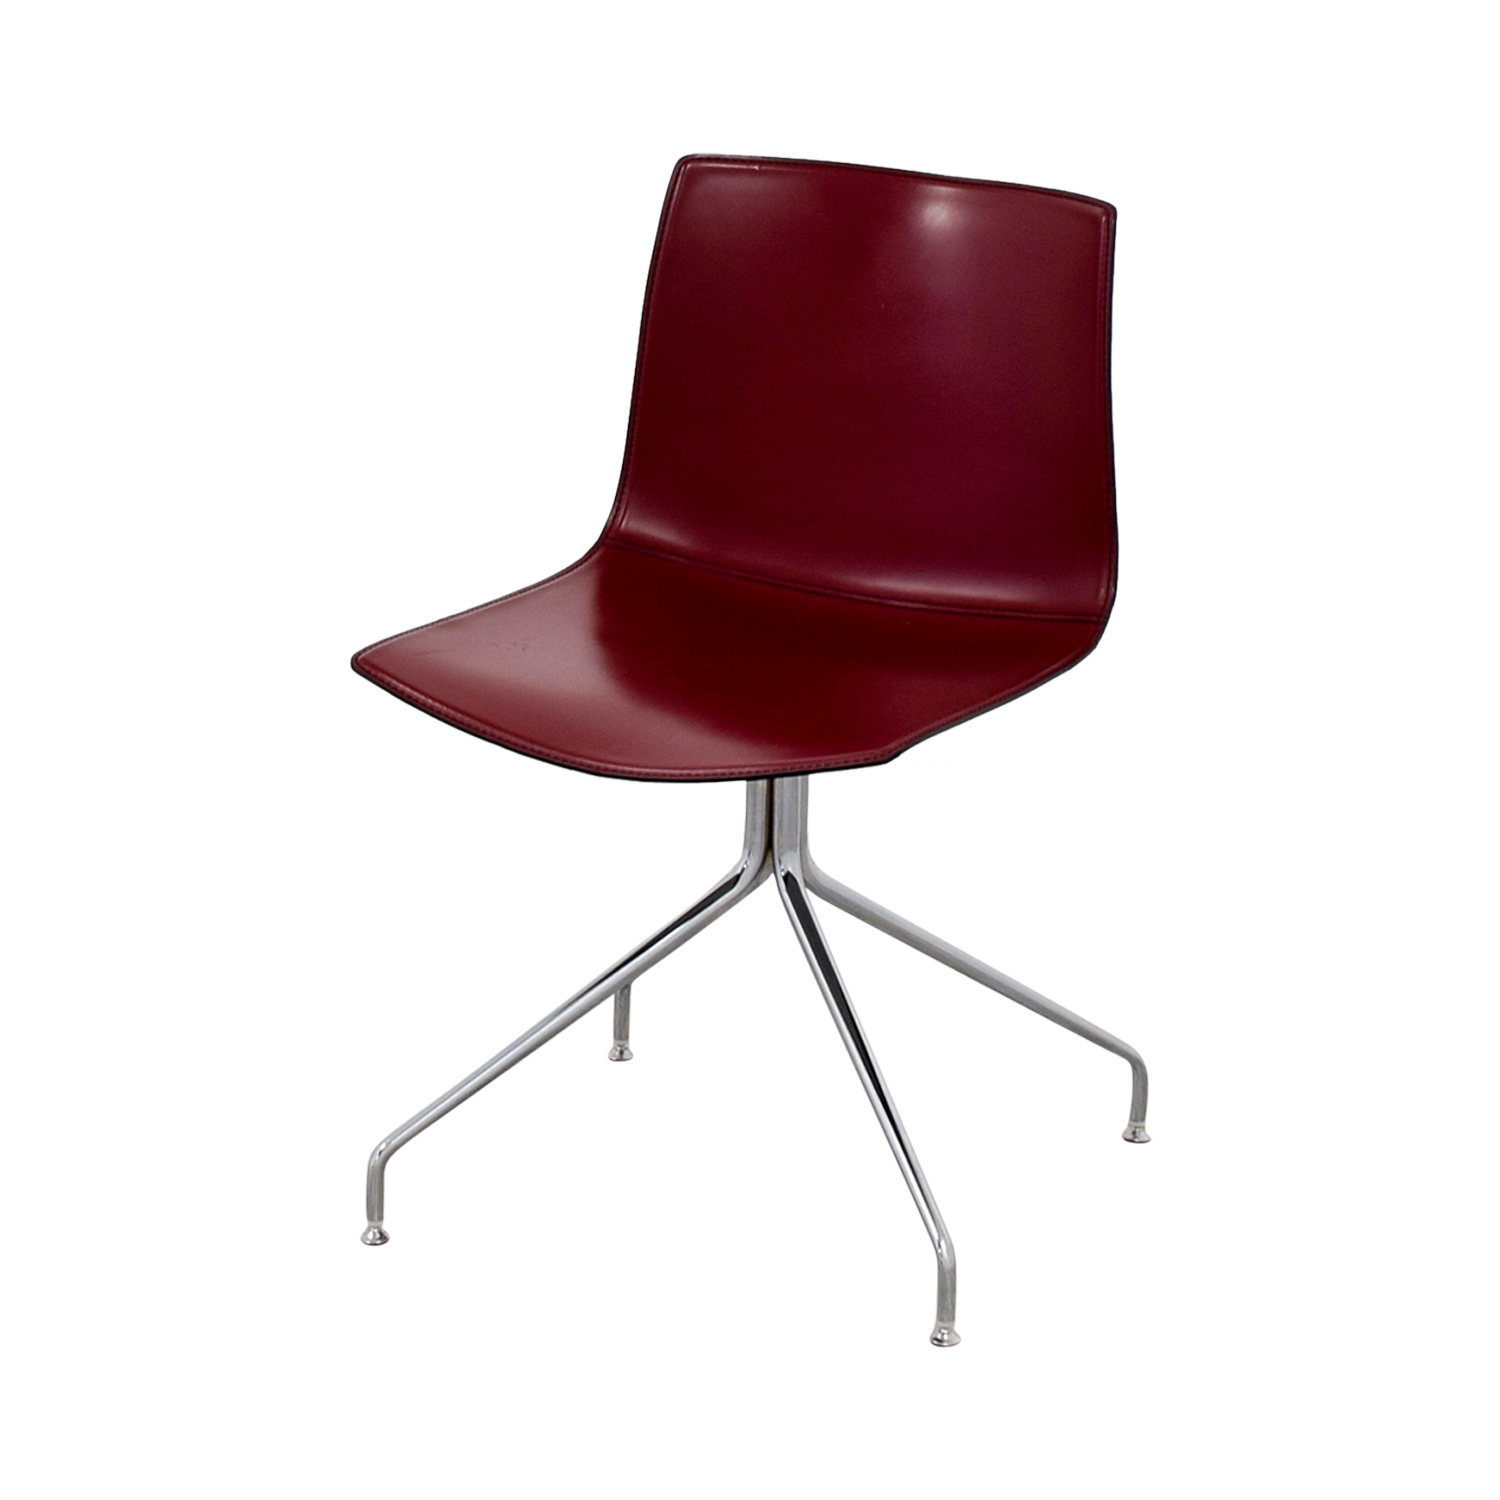 Arper Arper Catifa 53 Burgundy Leather Armchair on sale